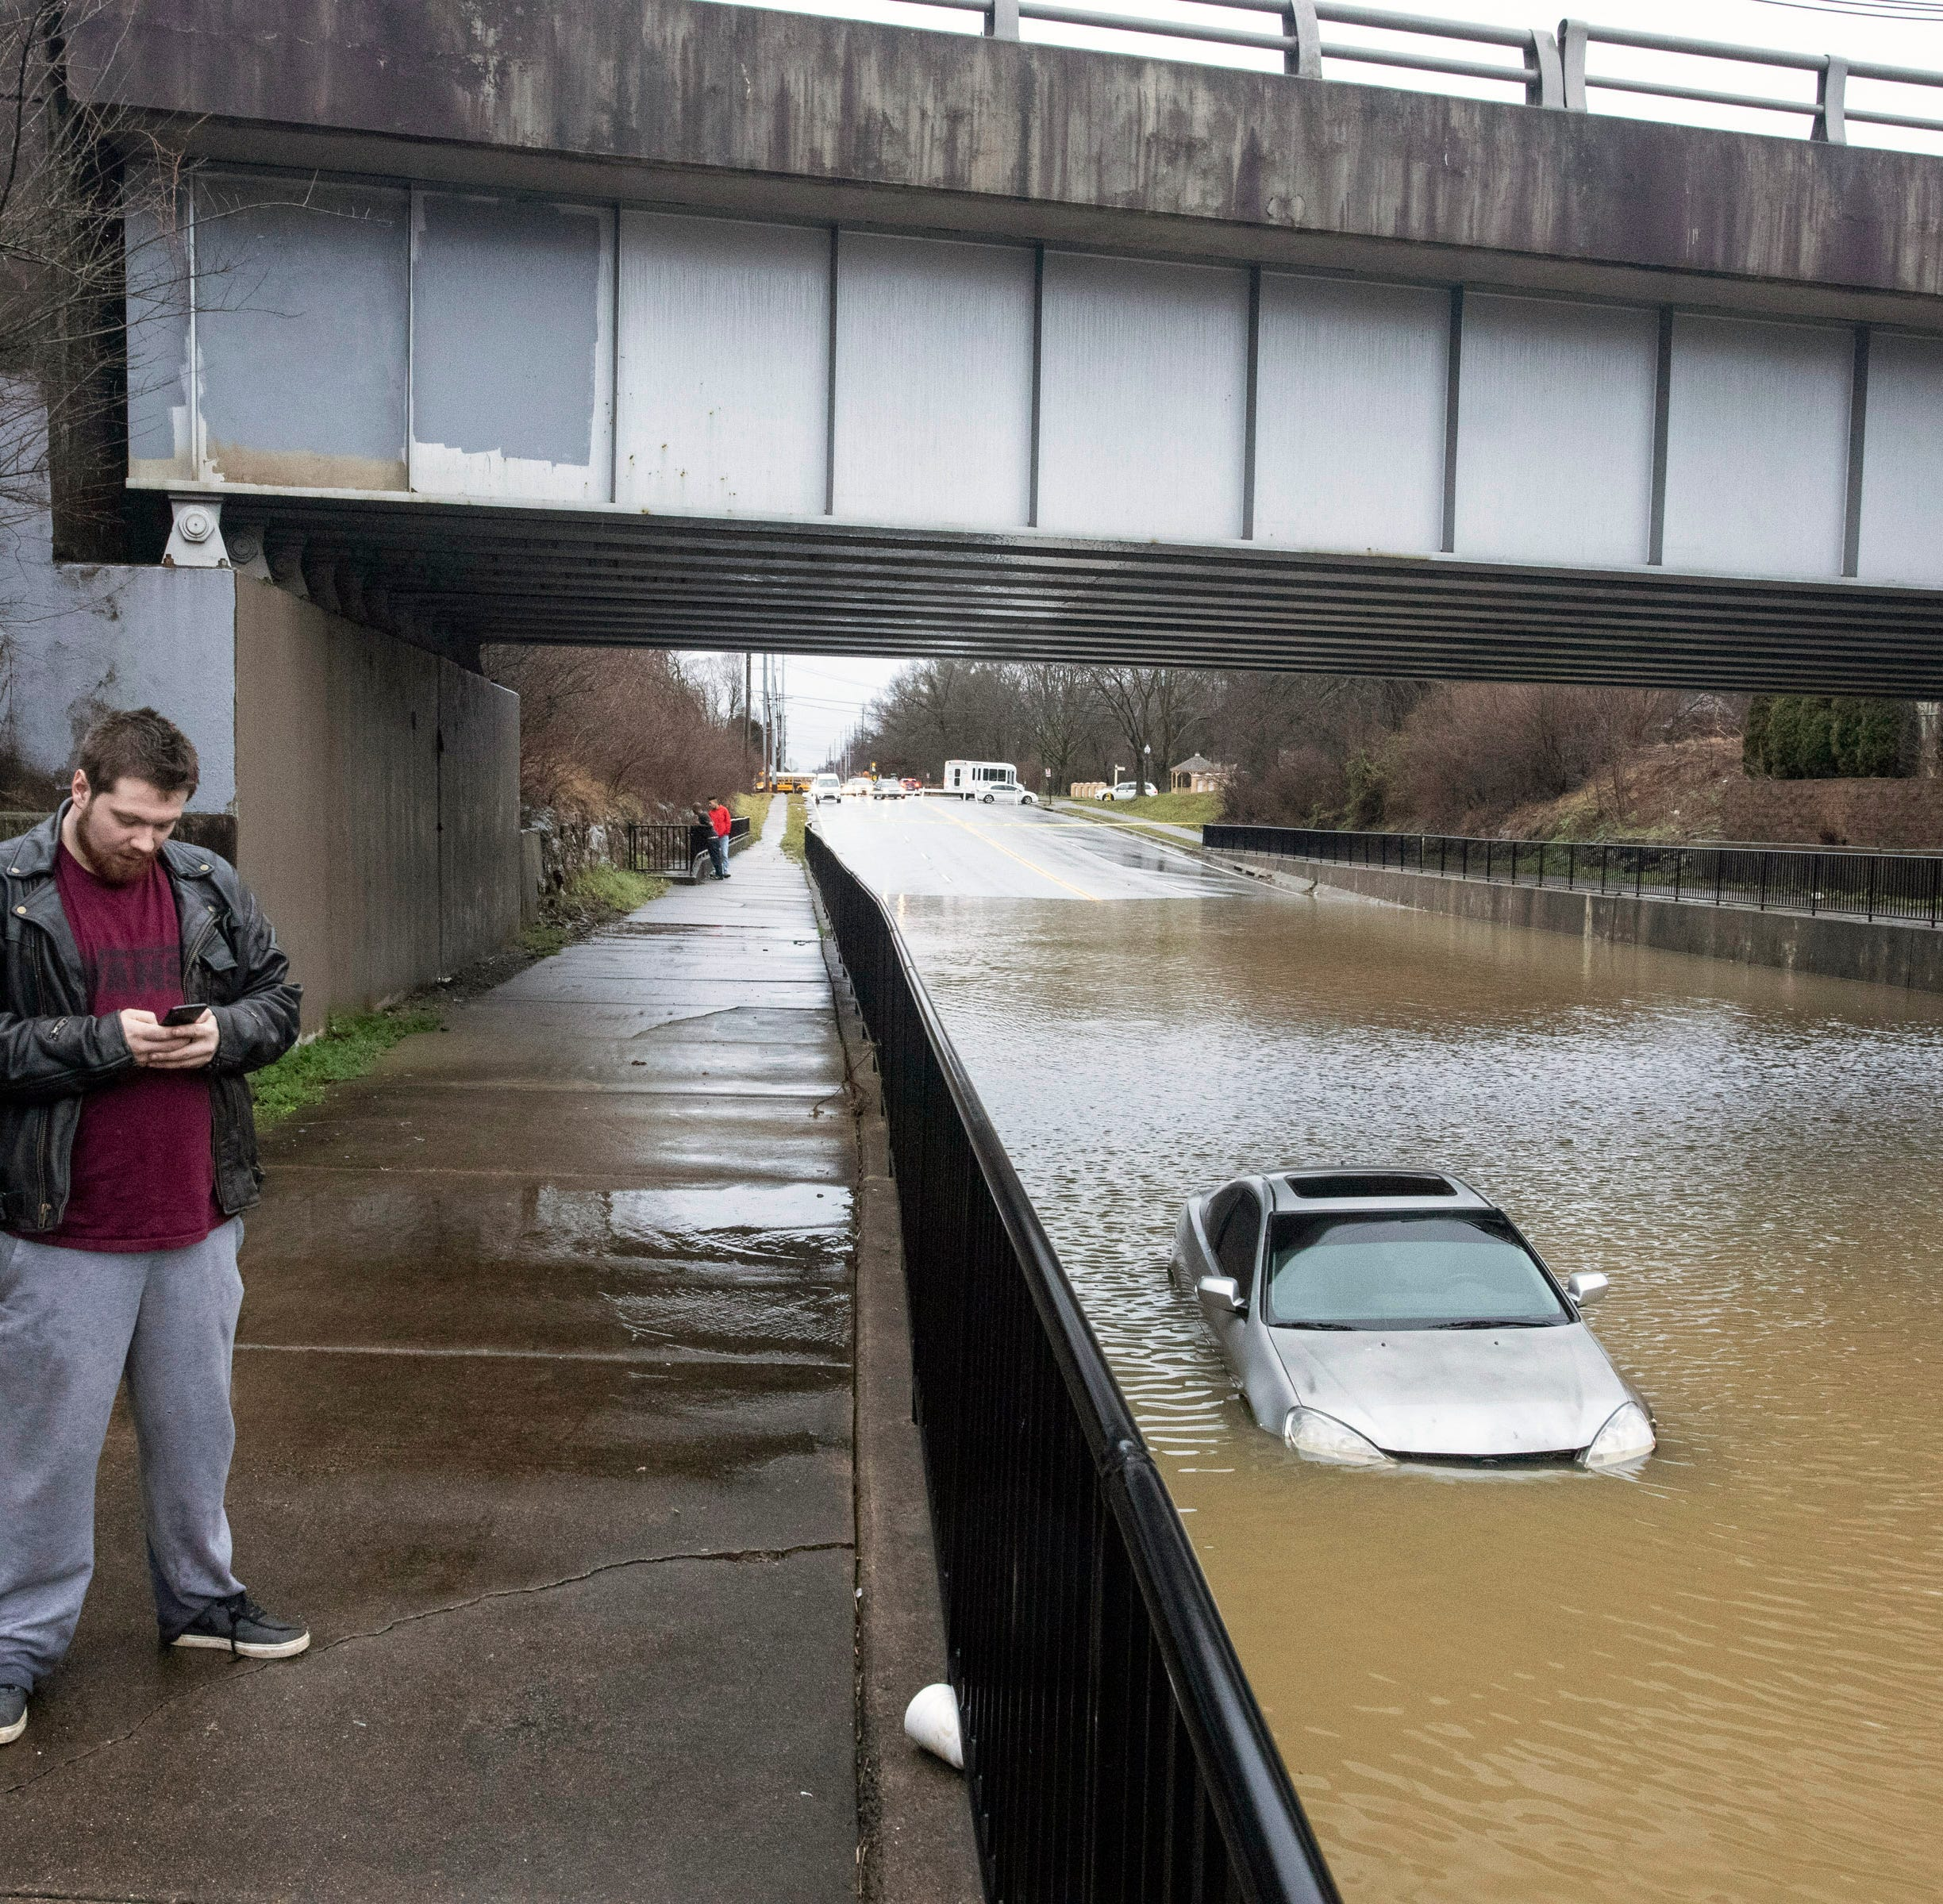 His car was destroyed at a flooded intersection. So where were the warnings?